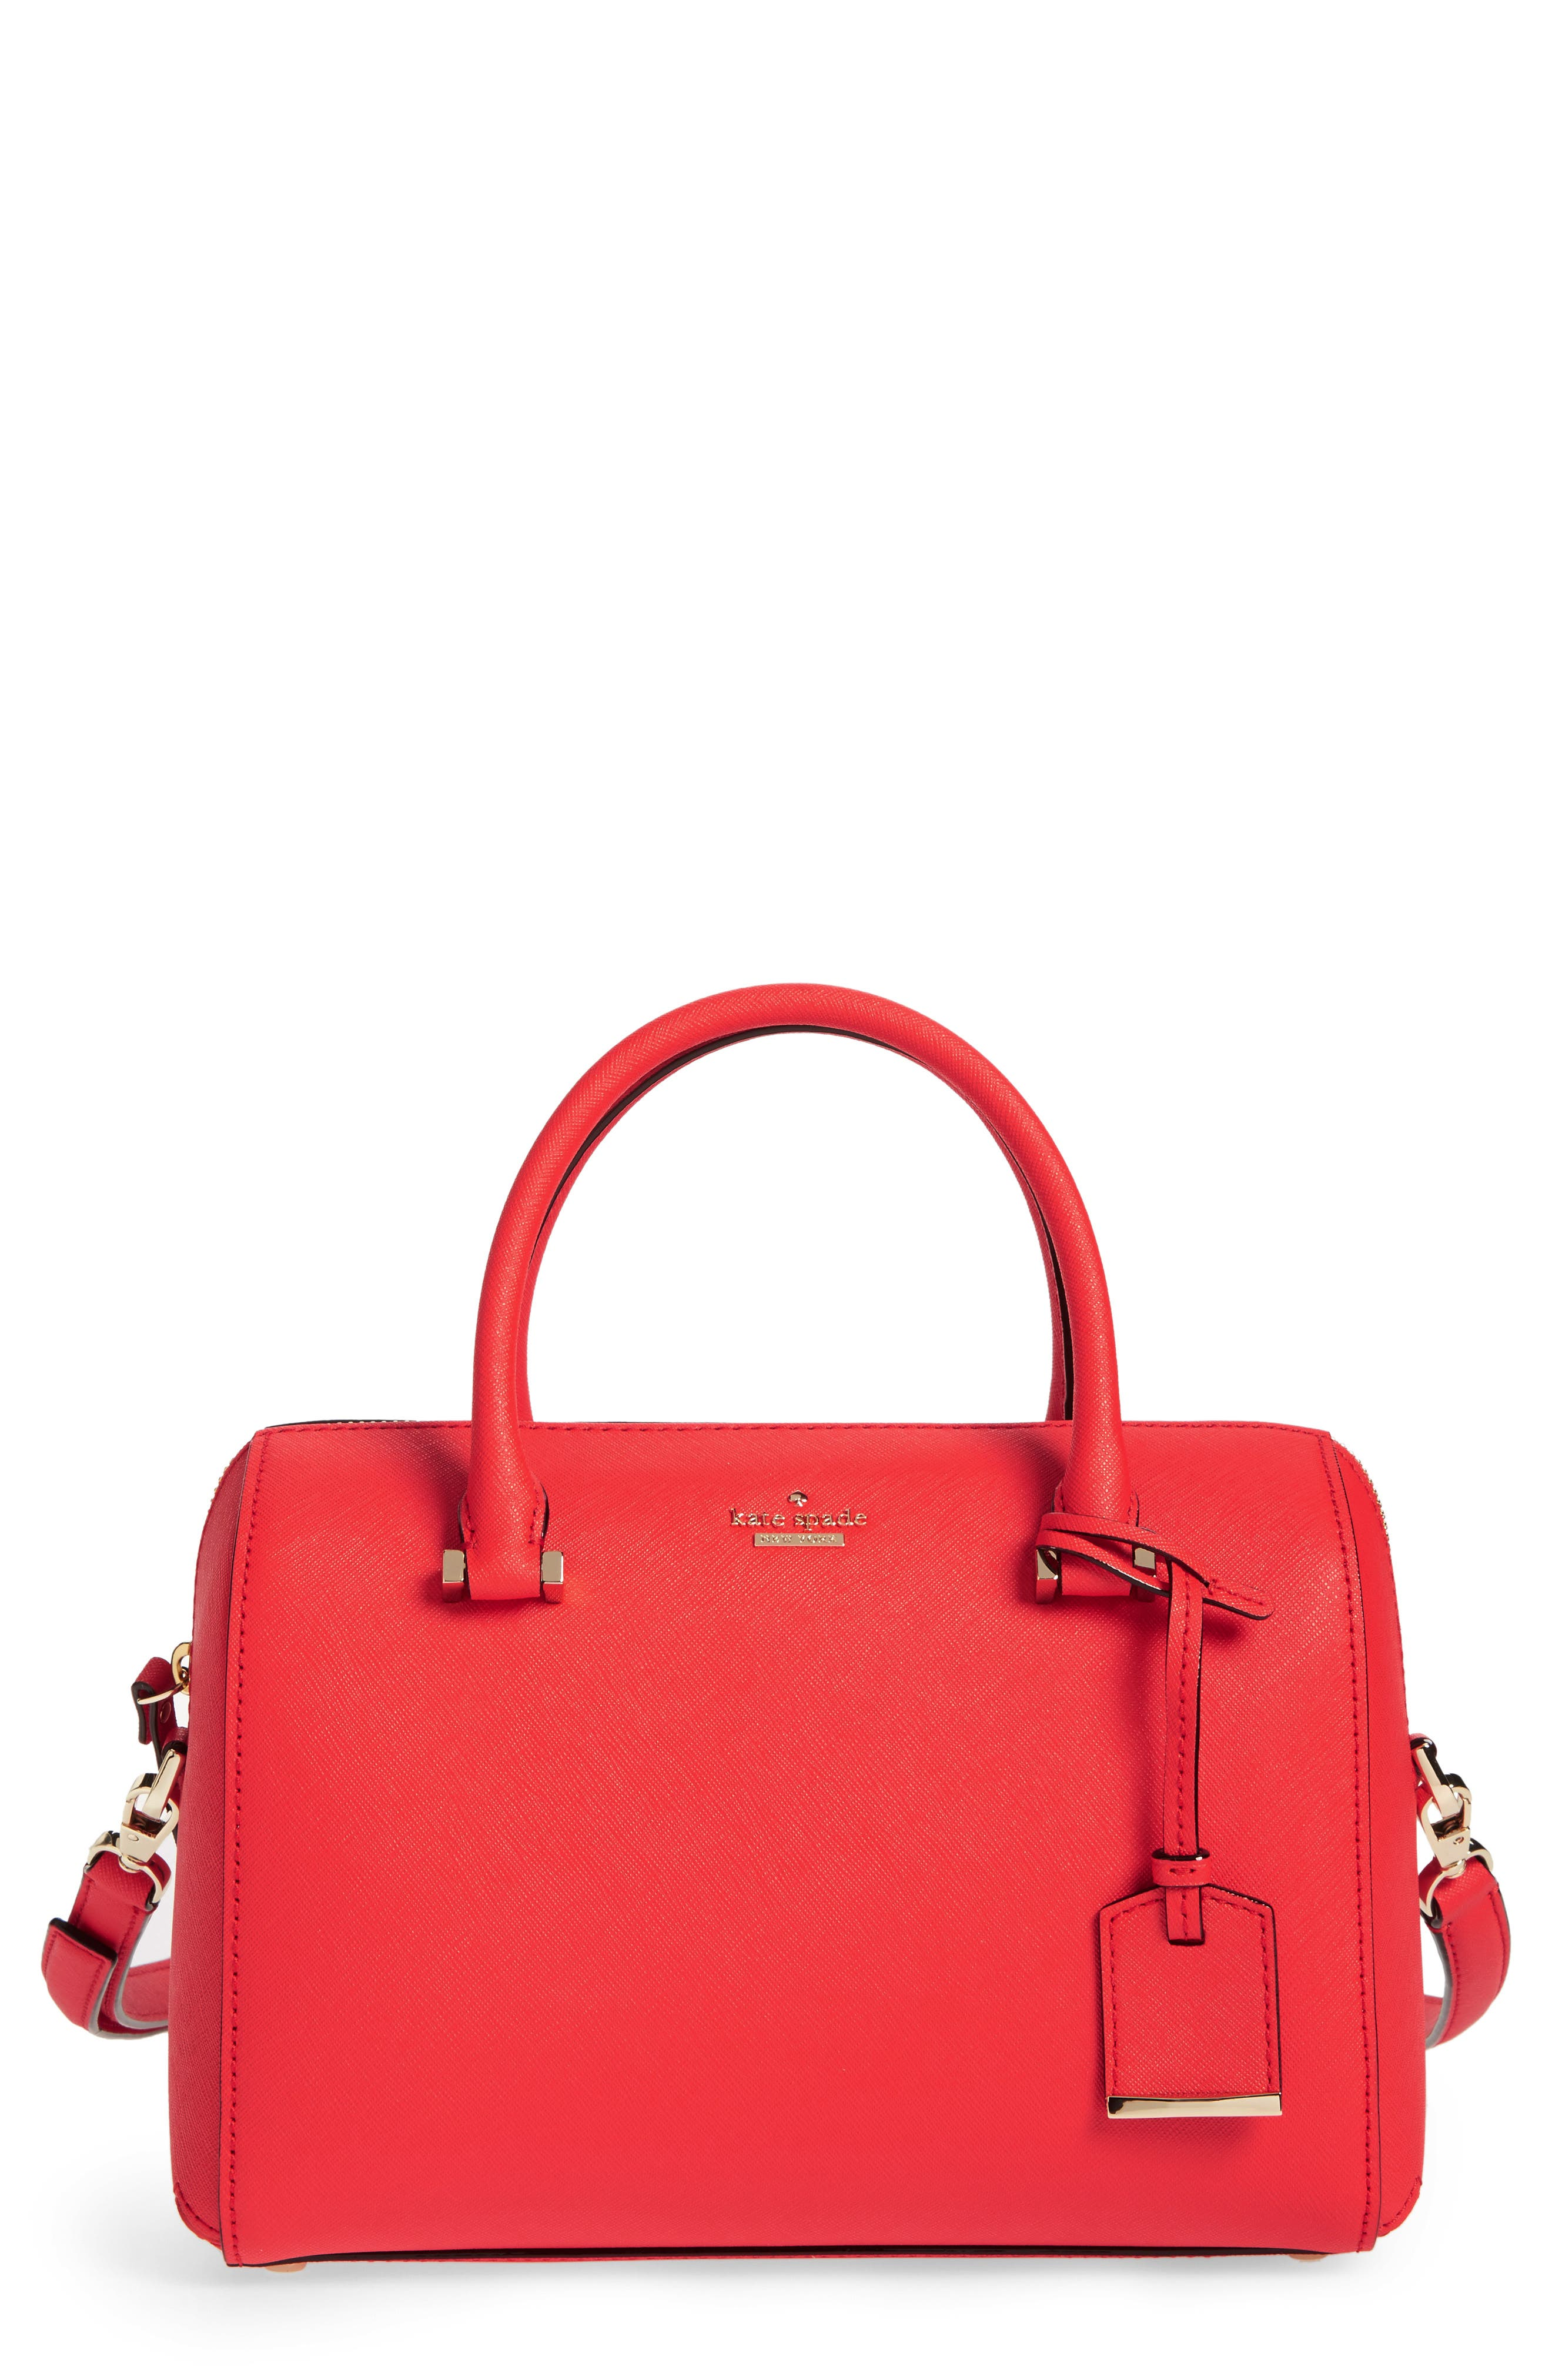 Alternate Image 1 Selected - kate spade new york cameron street large lane leather satchel